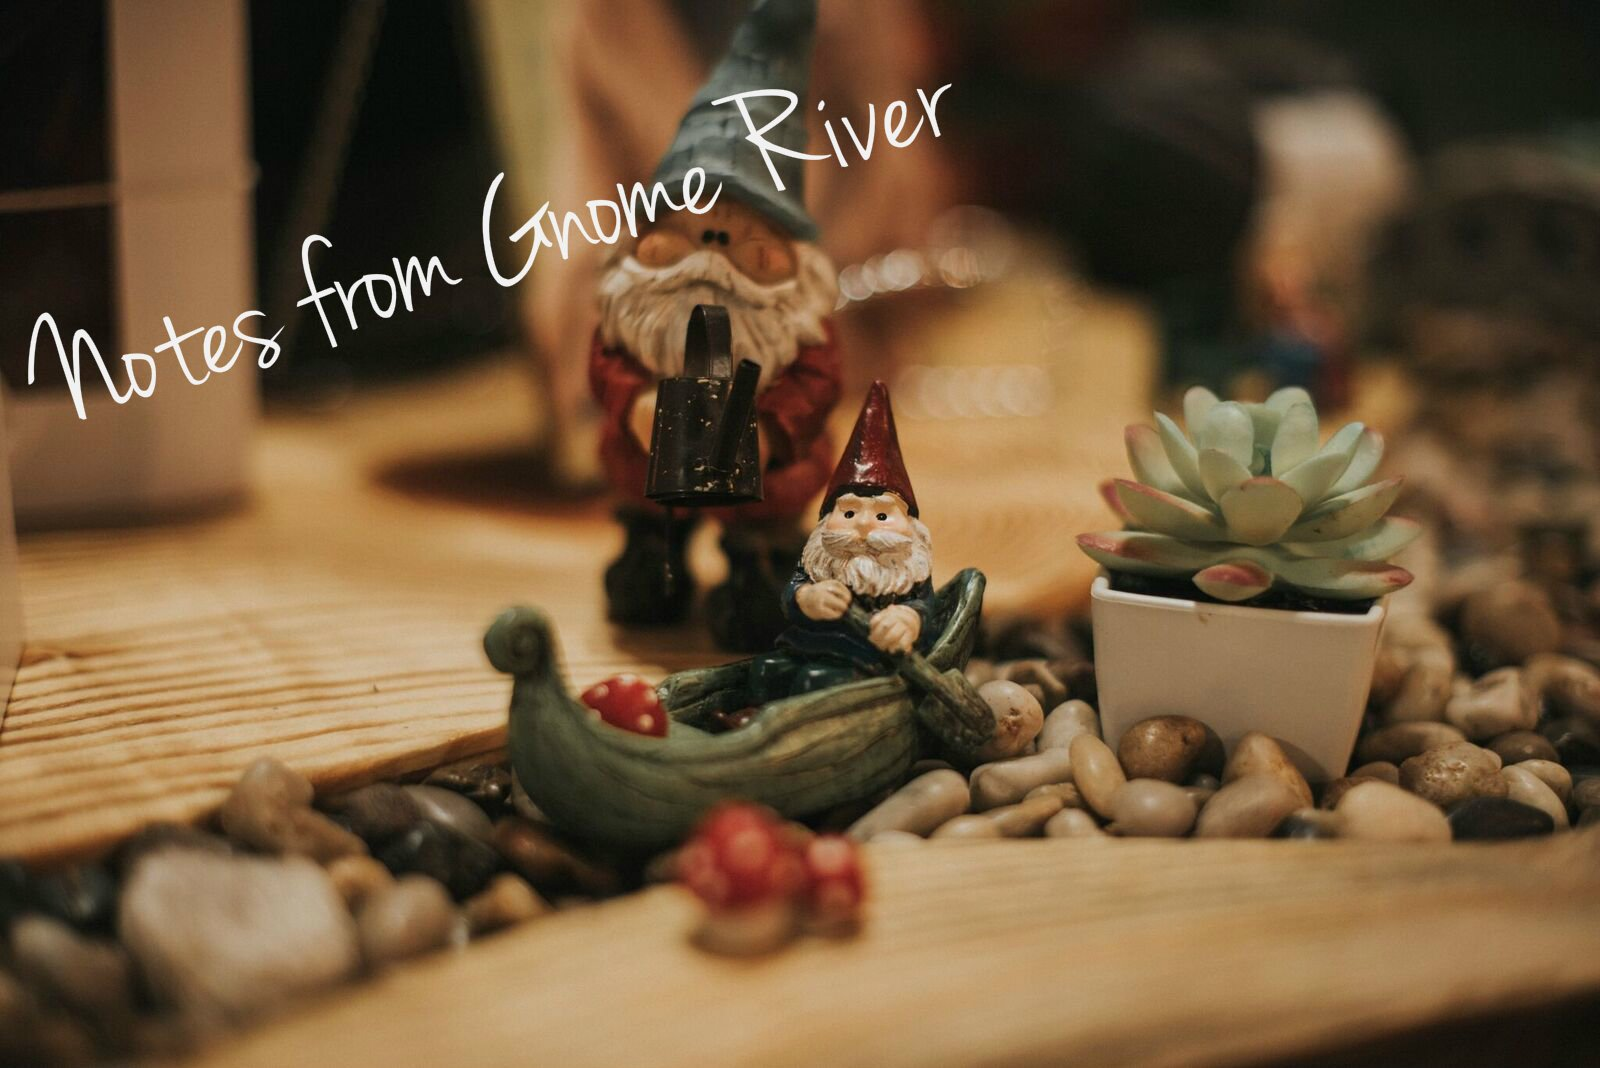 Notes from Gnome River